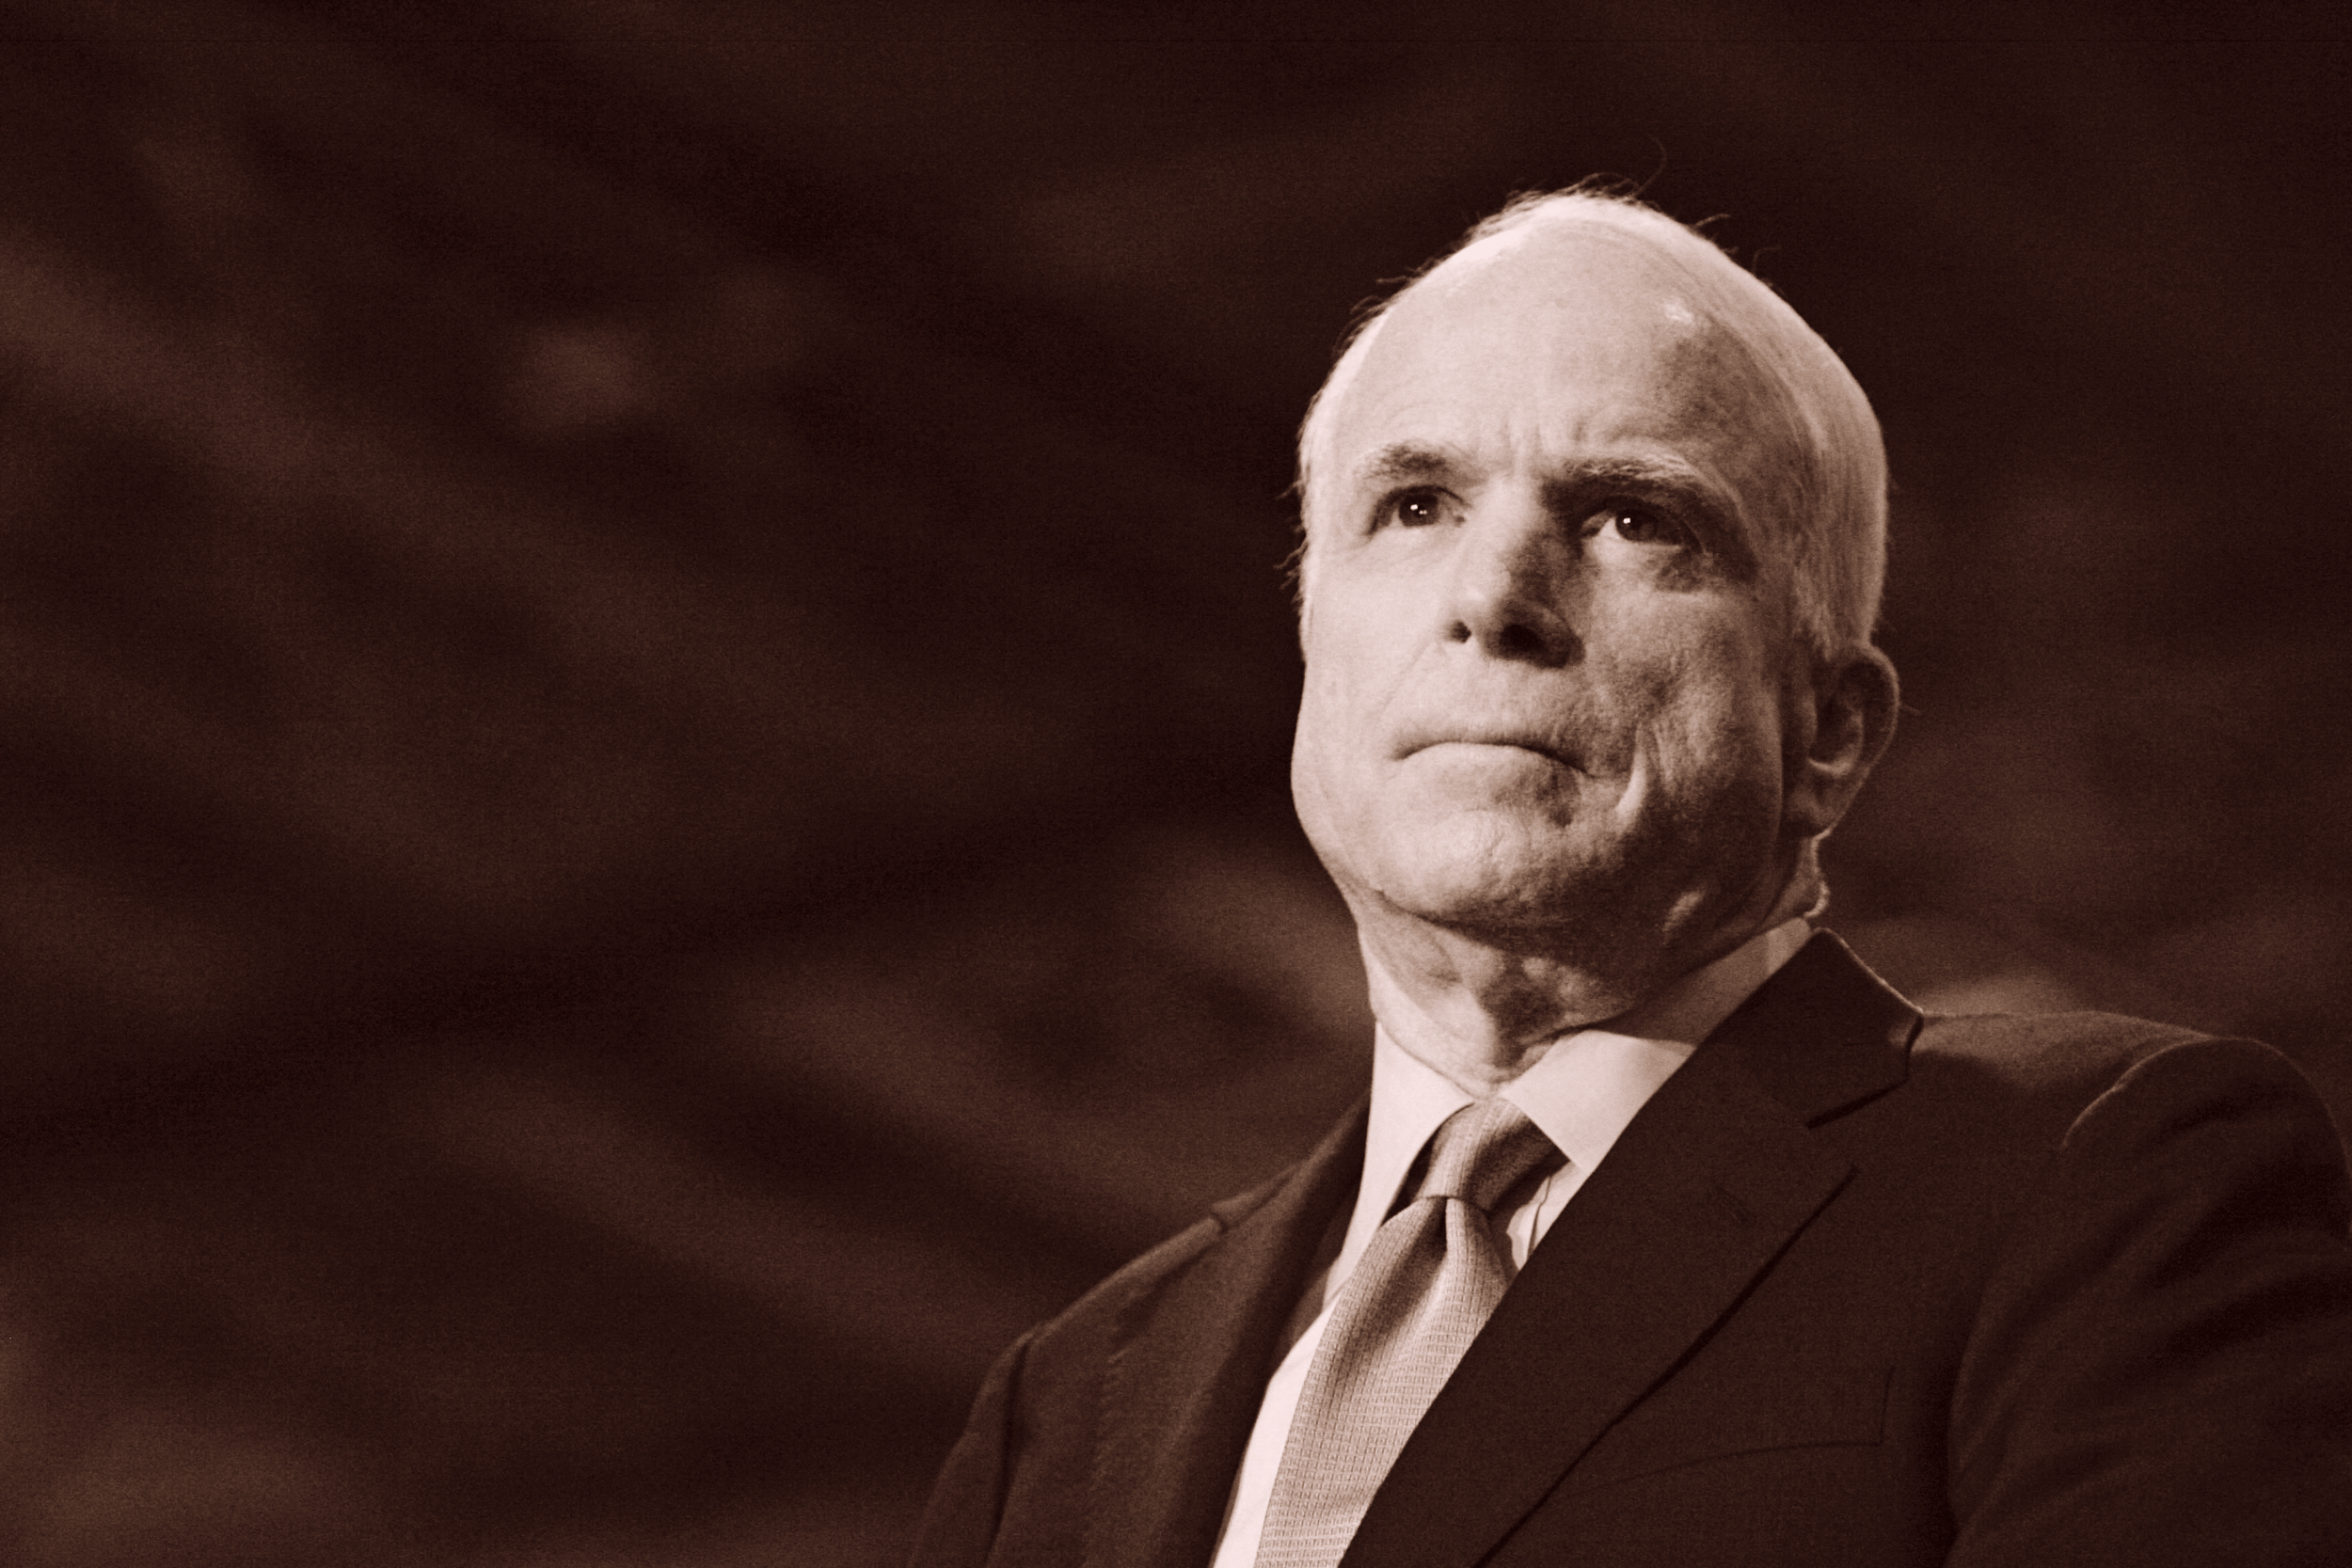 The-simple-reason-Trump-is-threatened-by-the-ghost-of-John-McCain